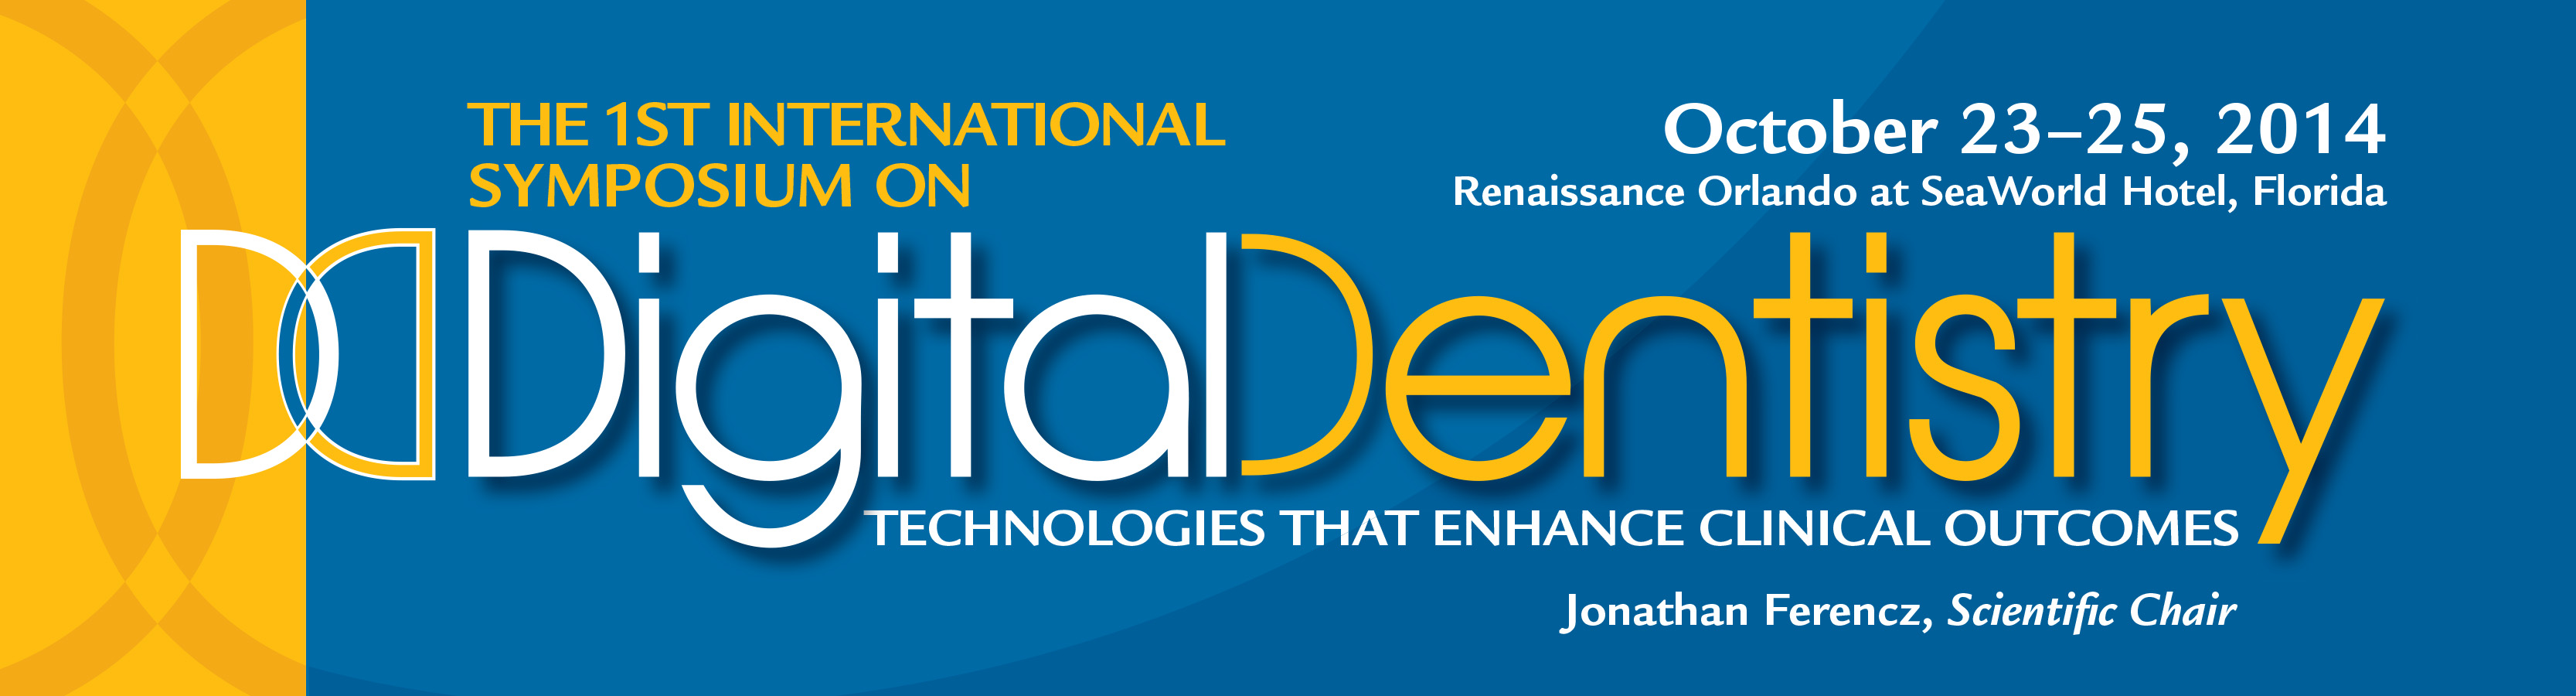 The 1st International Symposium on Digital Dentistry